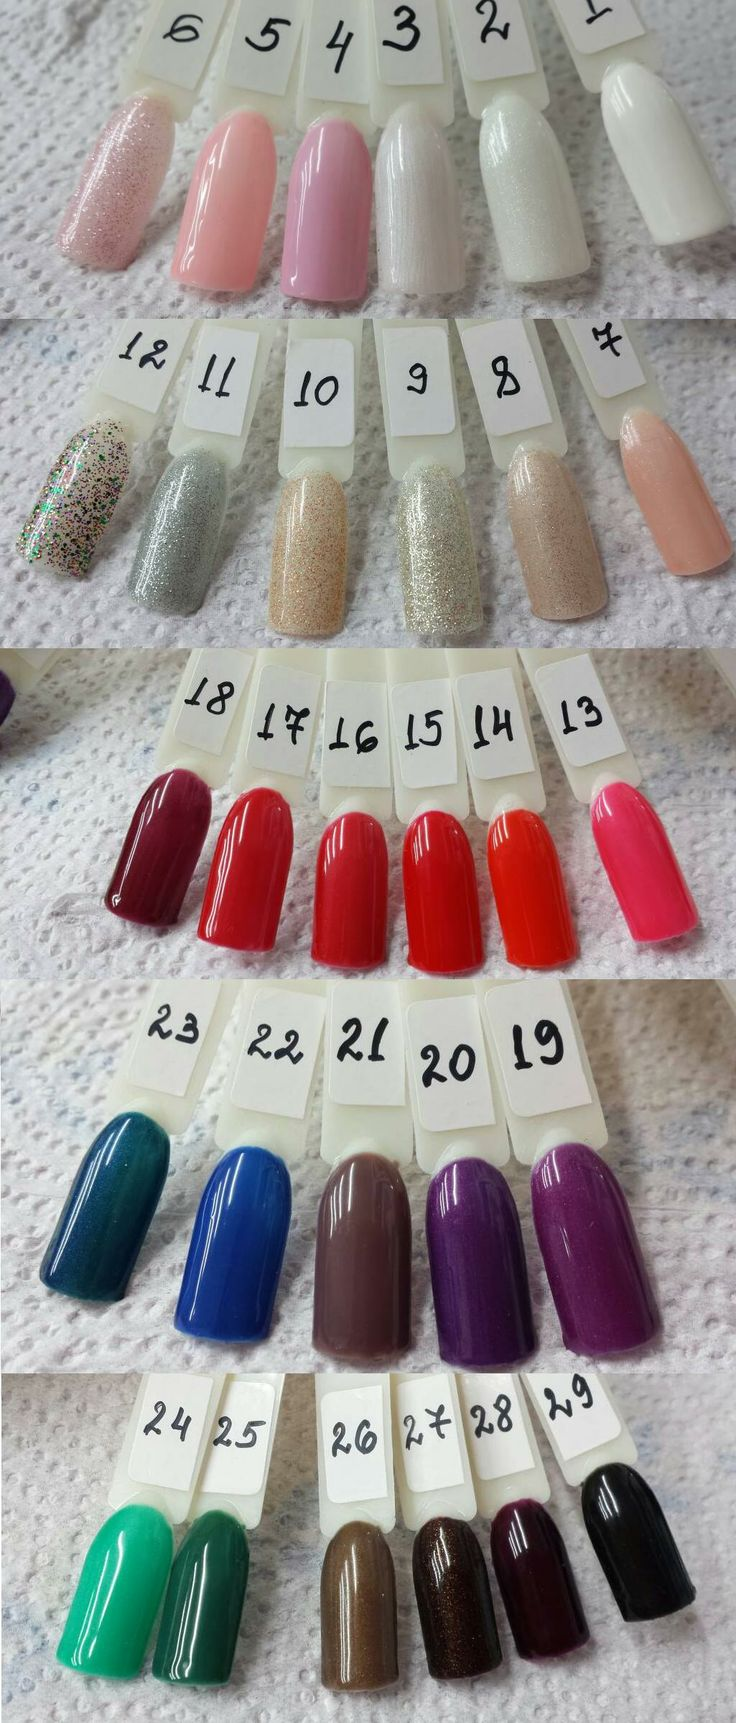 163 best Gel polish images on Pinterest | Nail scissors, Cute nails ...